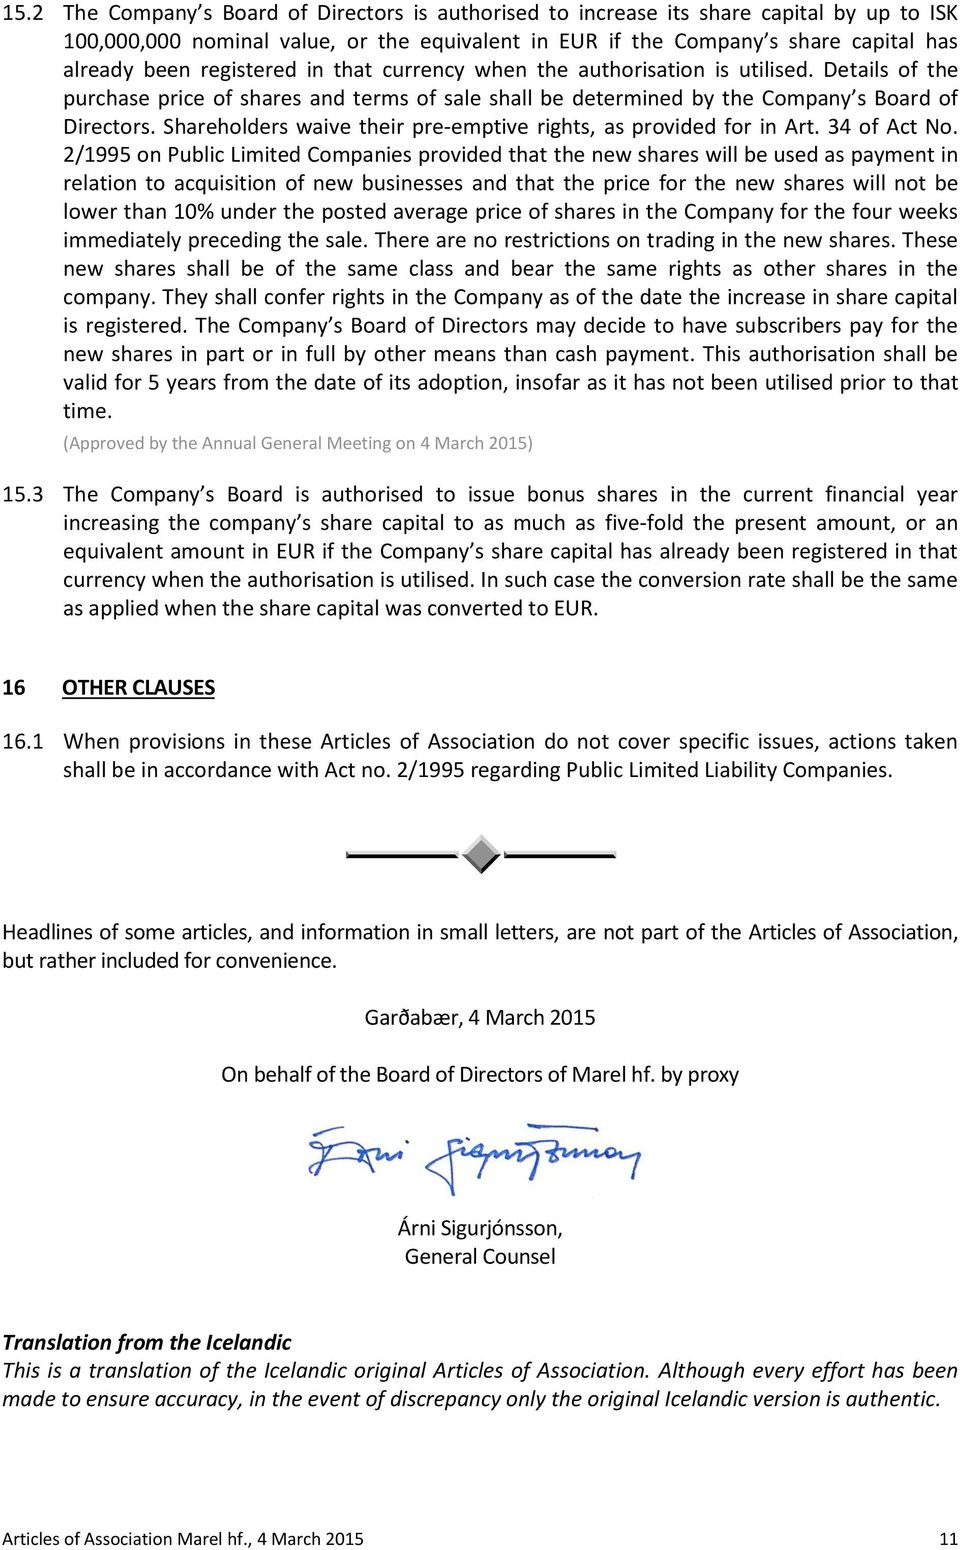 Shareholders waive their pre-emptive rights, as provided for in Art. 34 of Act No.